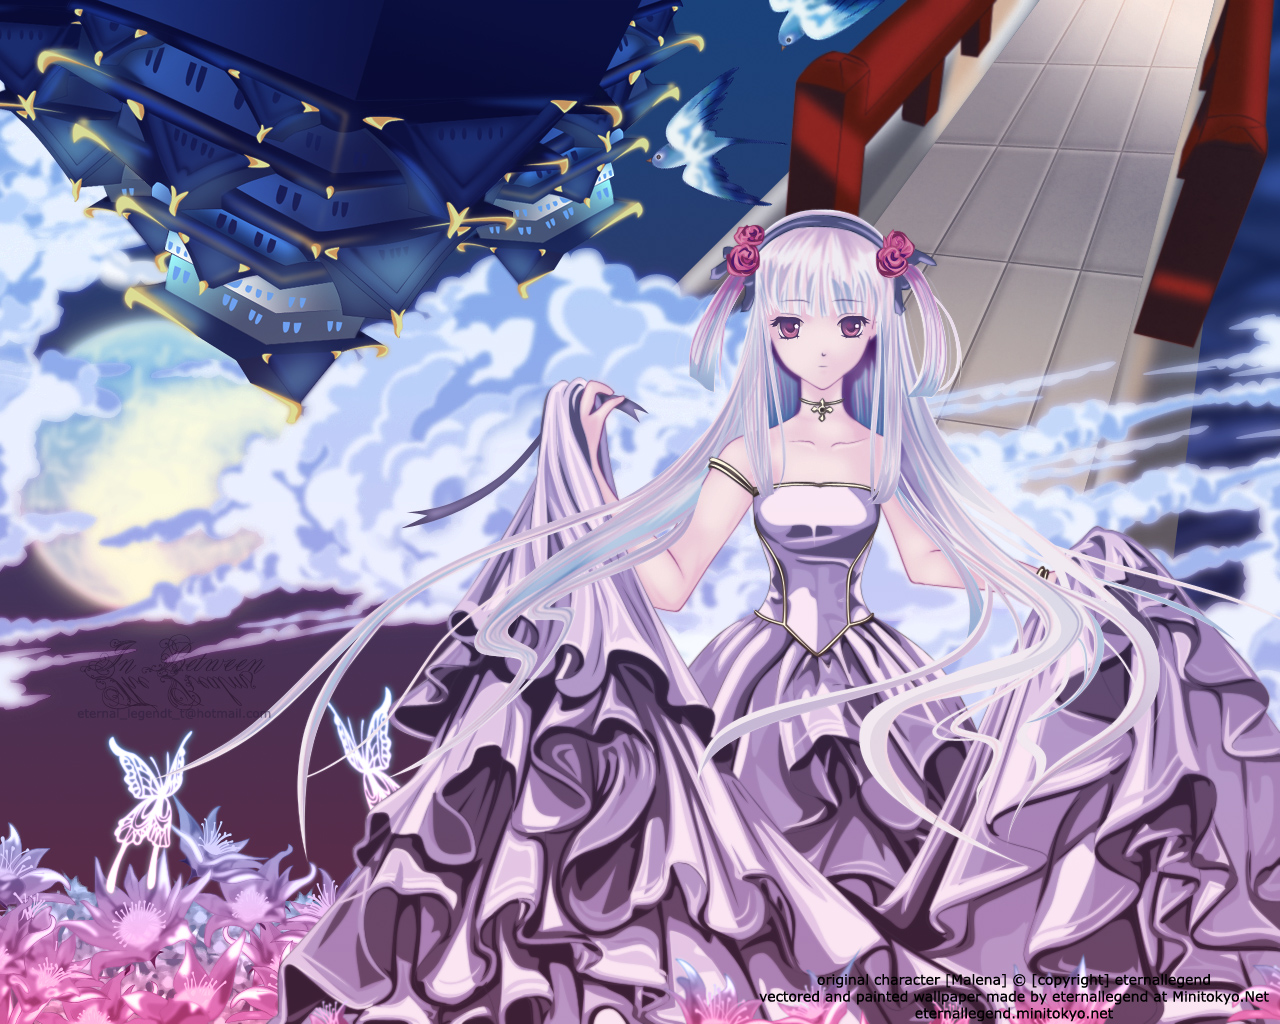 Ball Gown - Wallpaper and Scan Gallery - Minitokyo